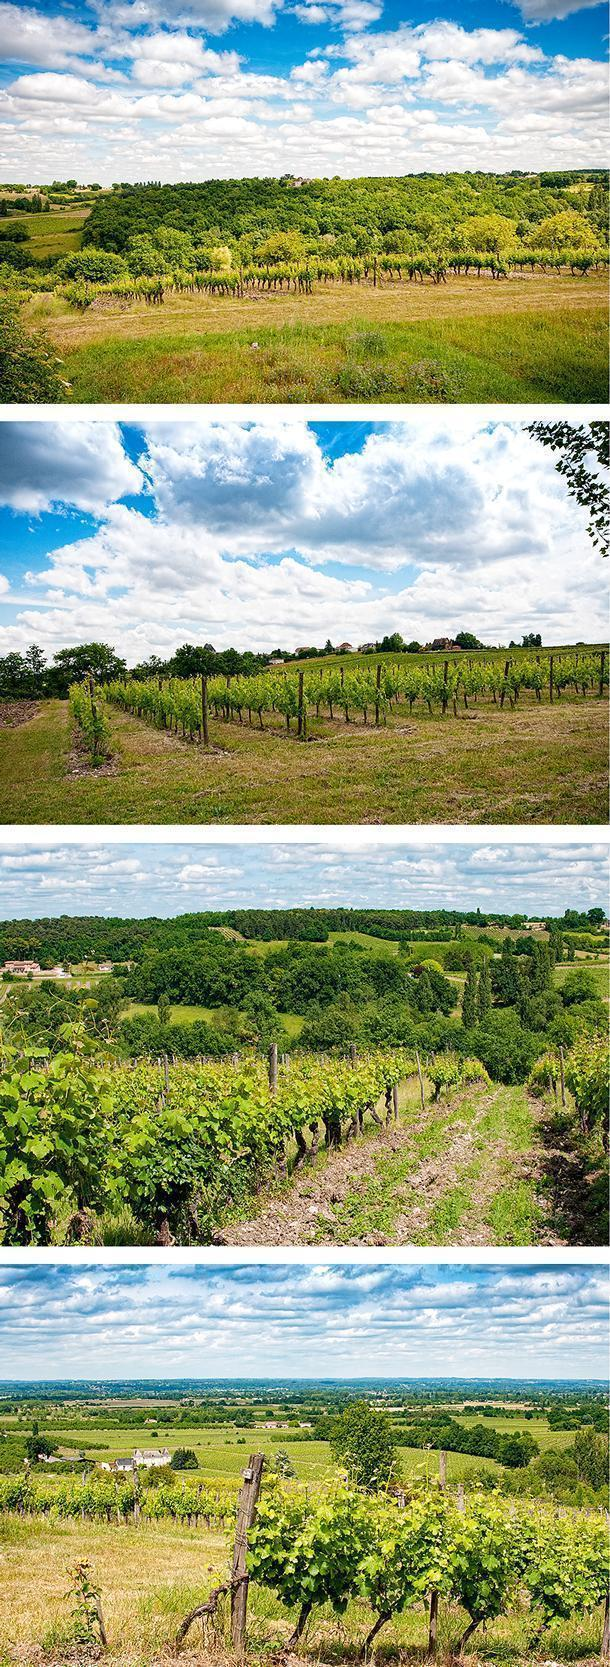 It's easy to see why the Feelys' chose Saussignac to call home